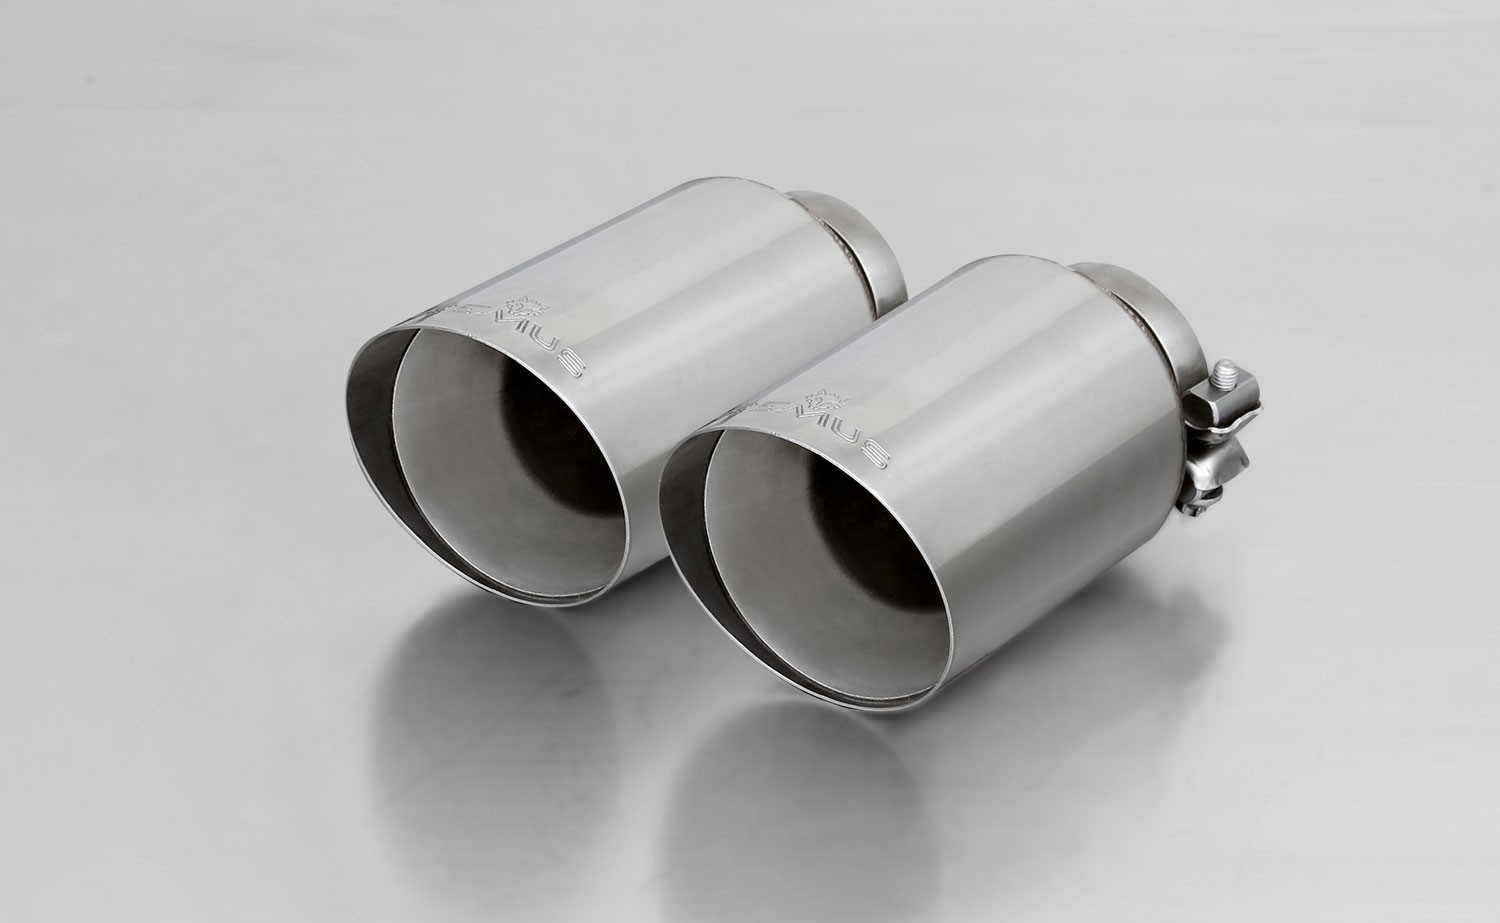 Remus Exhaust Tip - VW Mk7 Golf R - Straight-Cut Angled Chrome